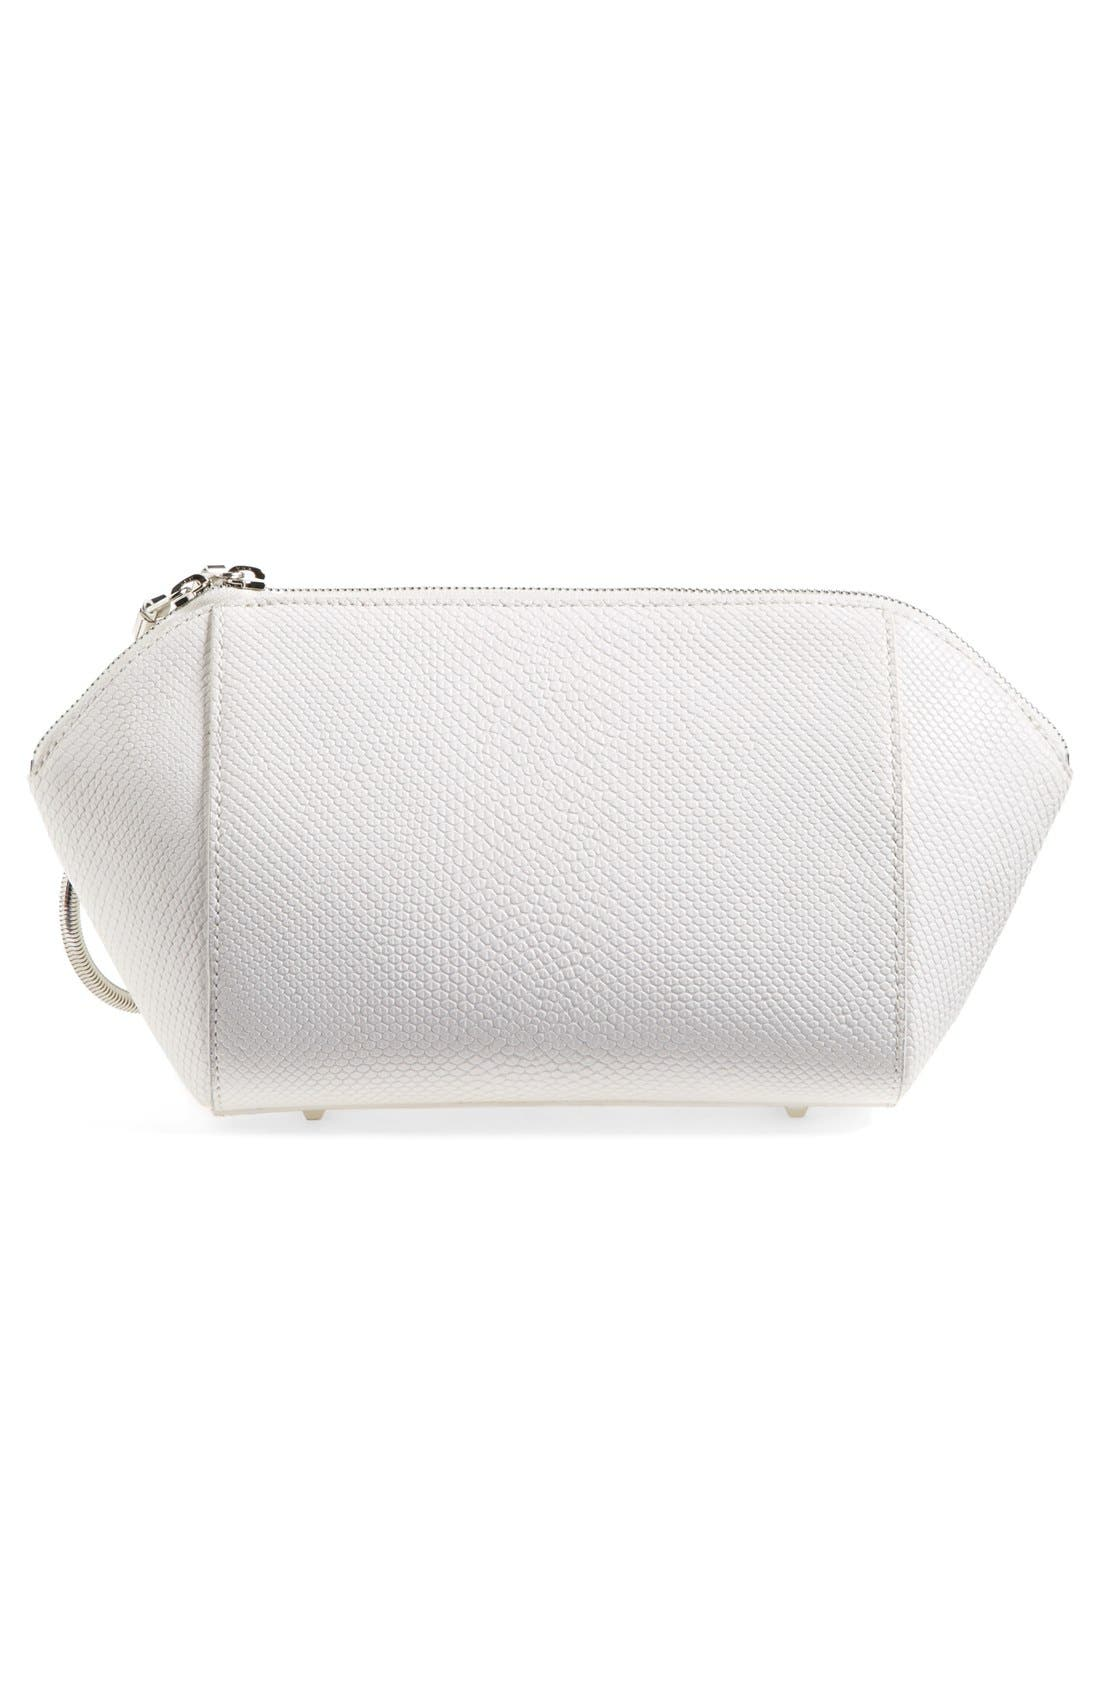 Alternate Image 3  - Alexander Wang 'Chastity' Leather Clutch